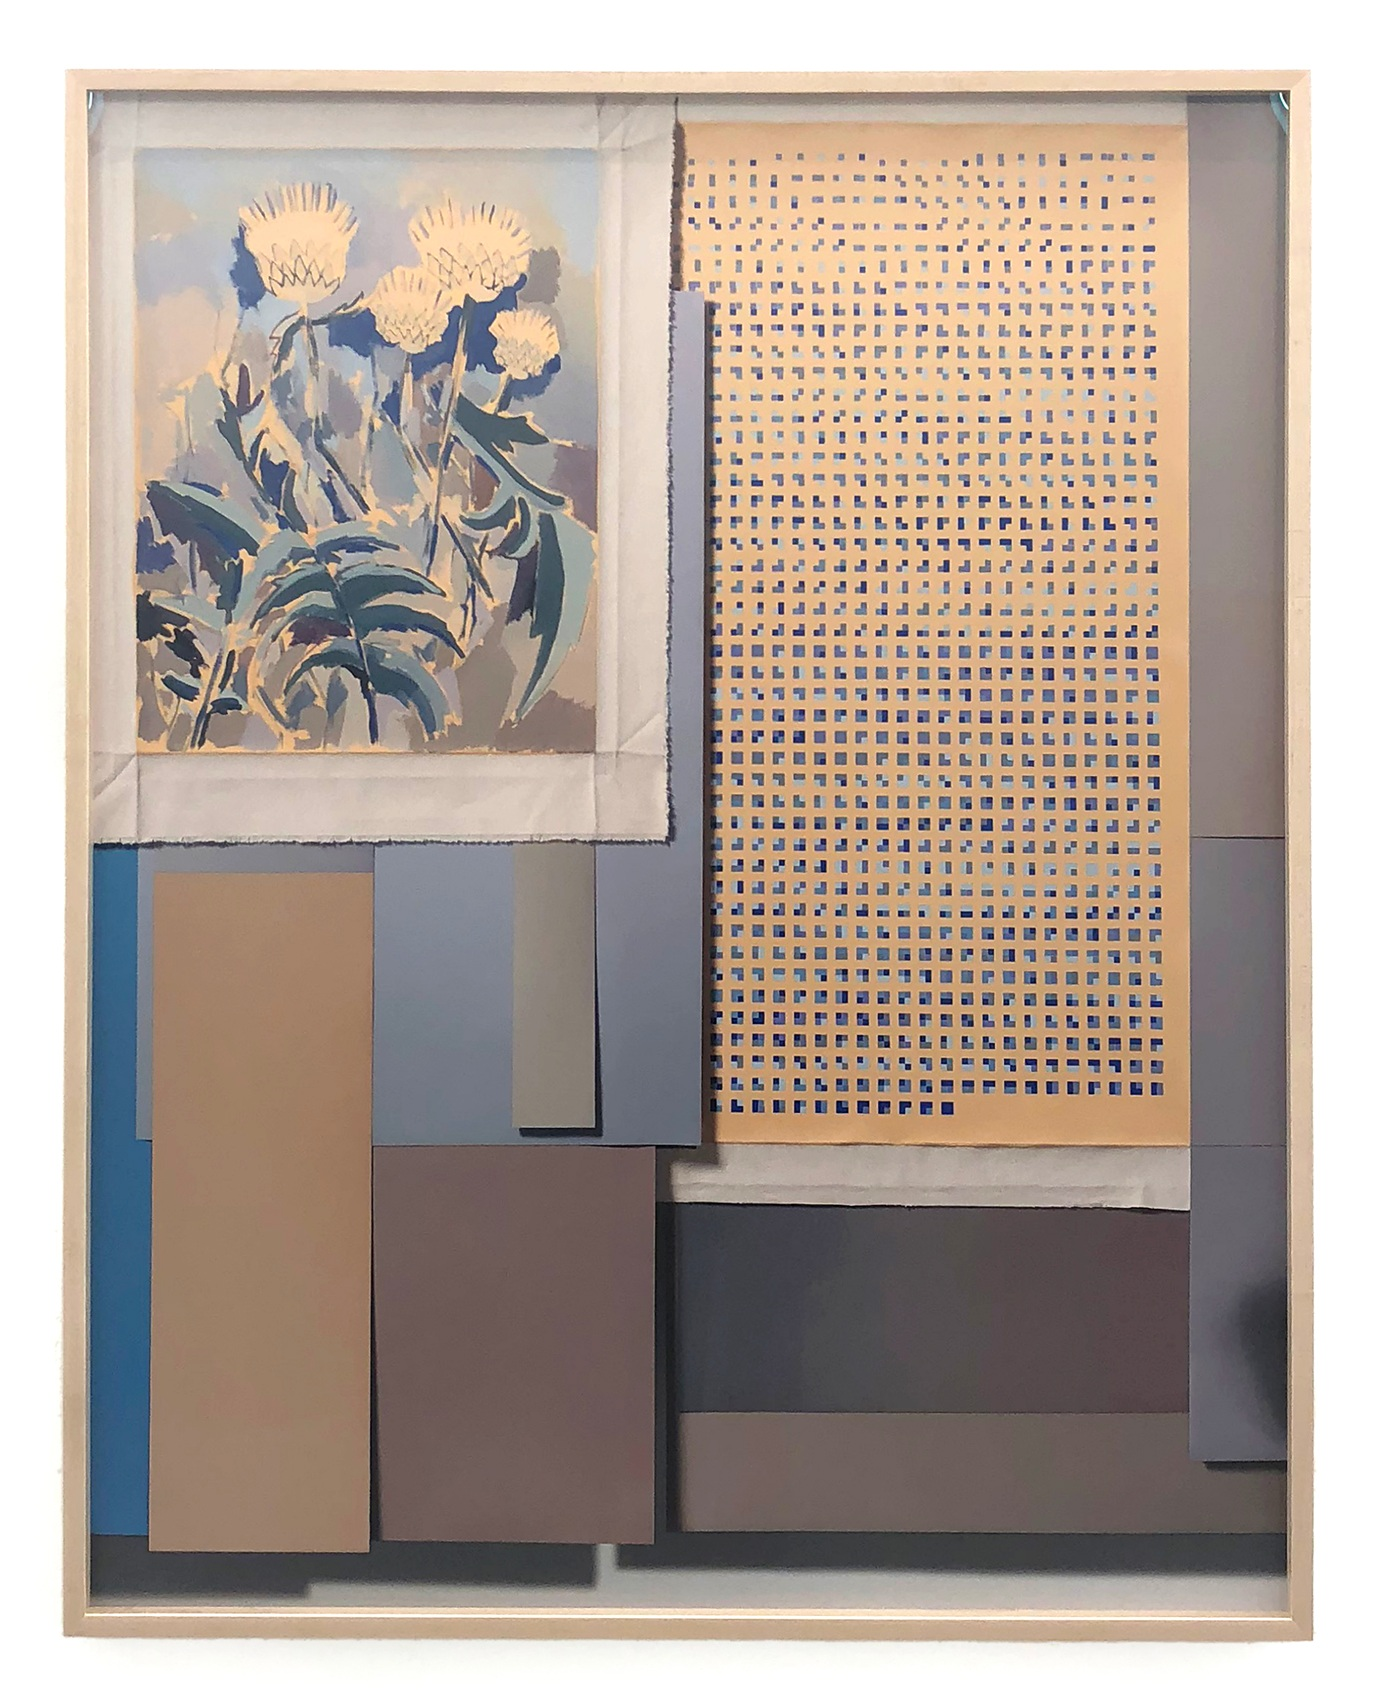 Image: Our own from Holding Environment at Marienne Boesky.